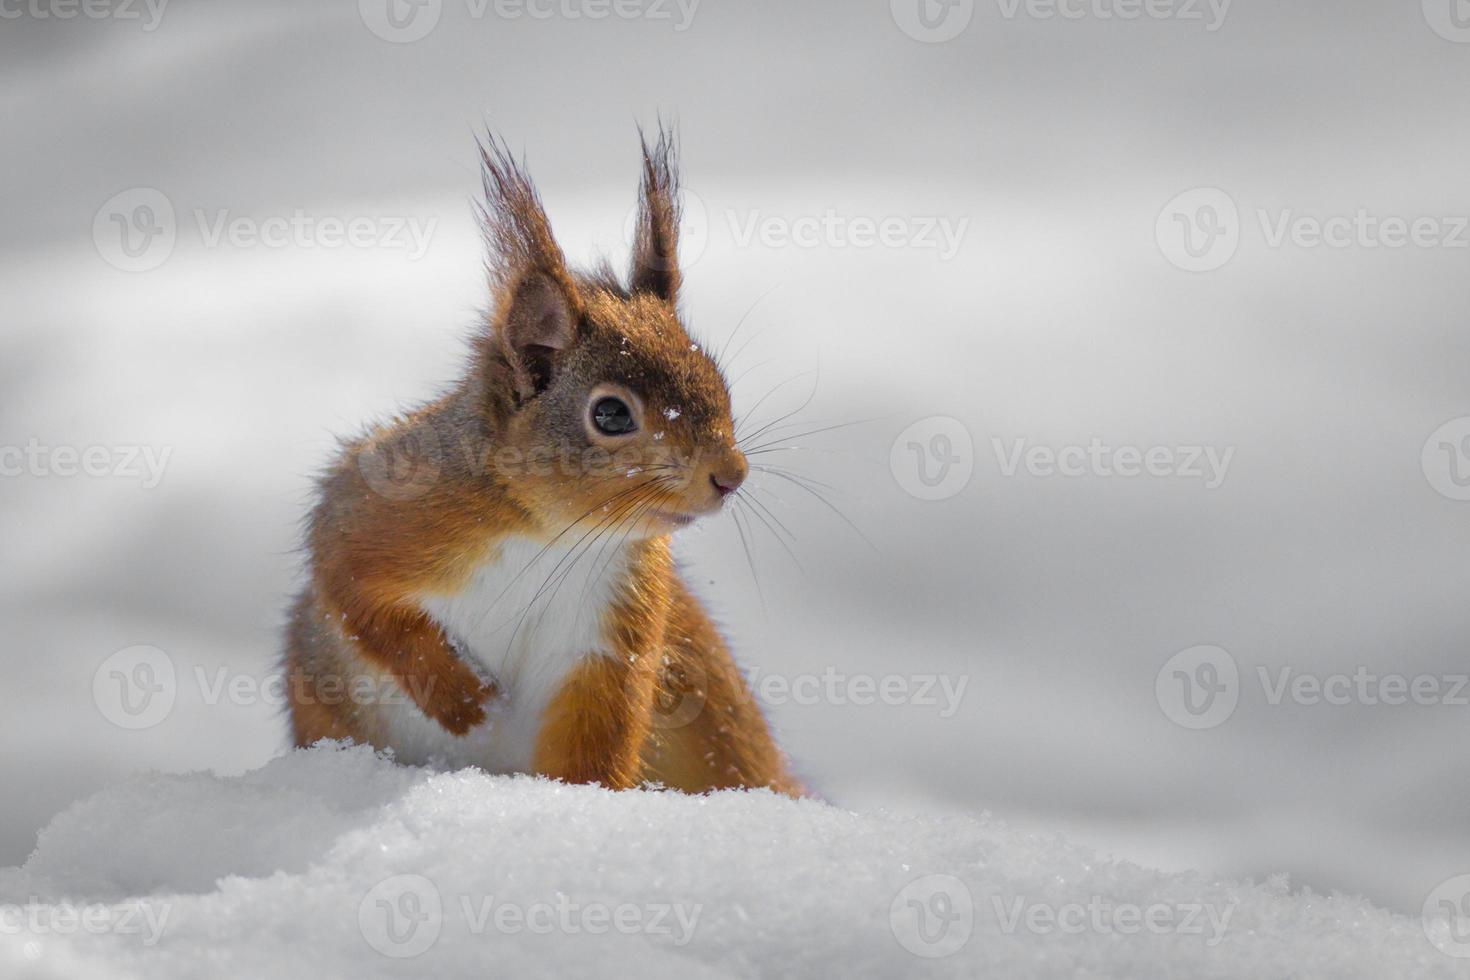 Red Squirrel in snow photo